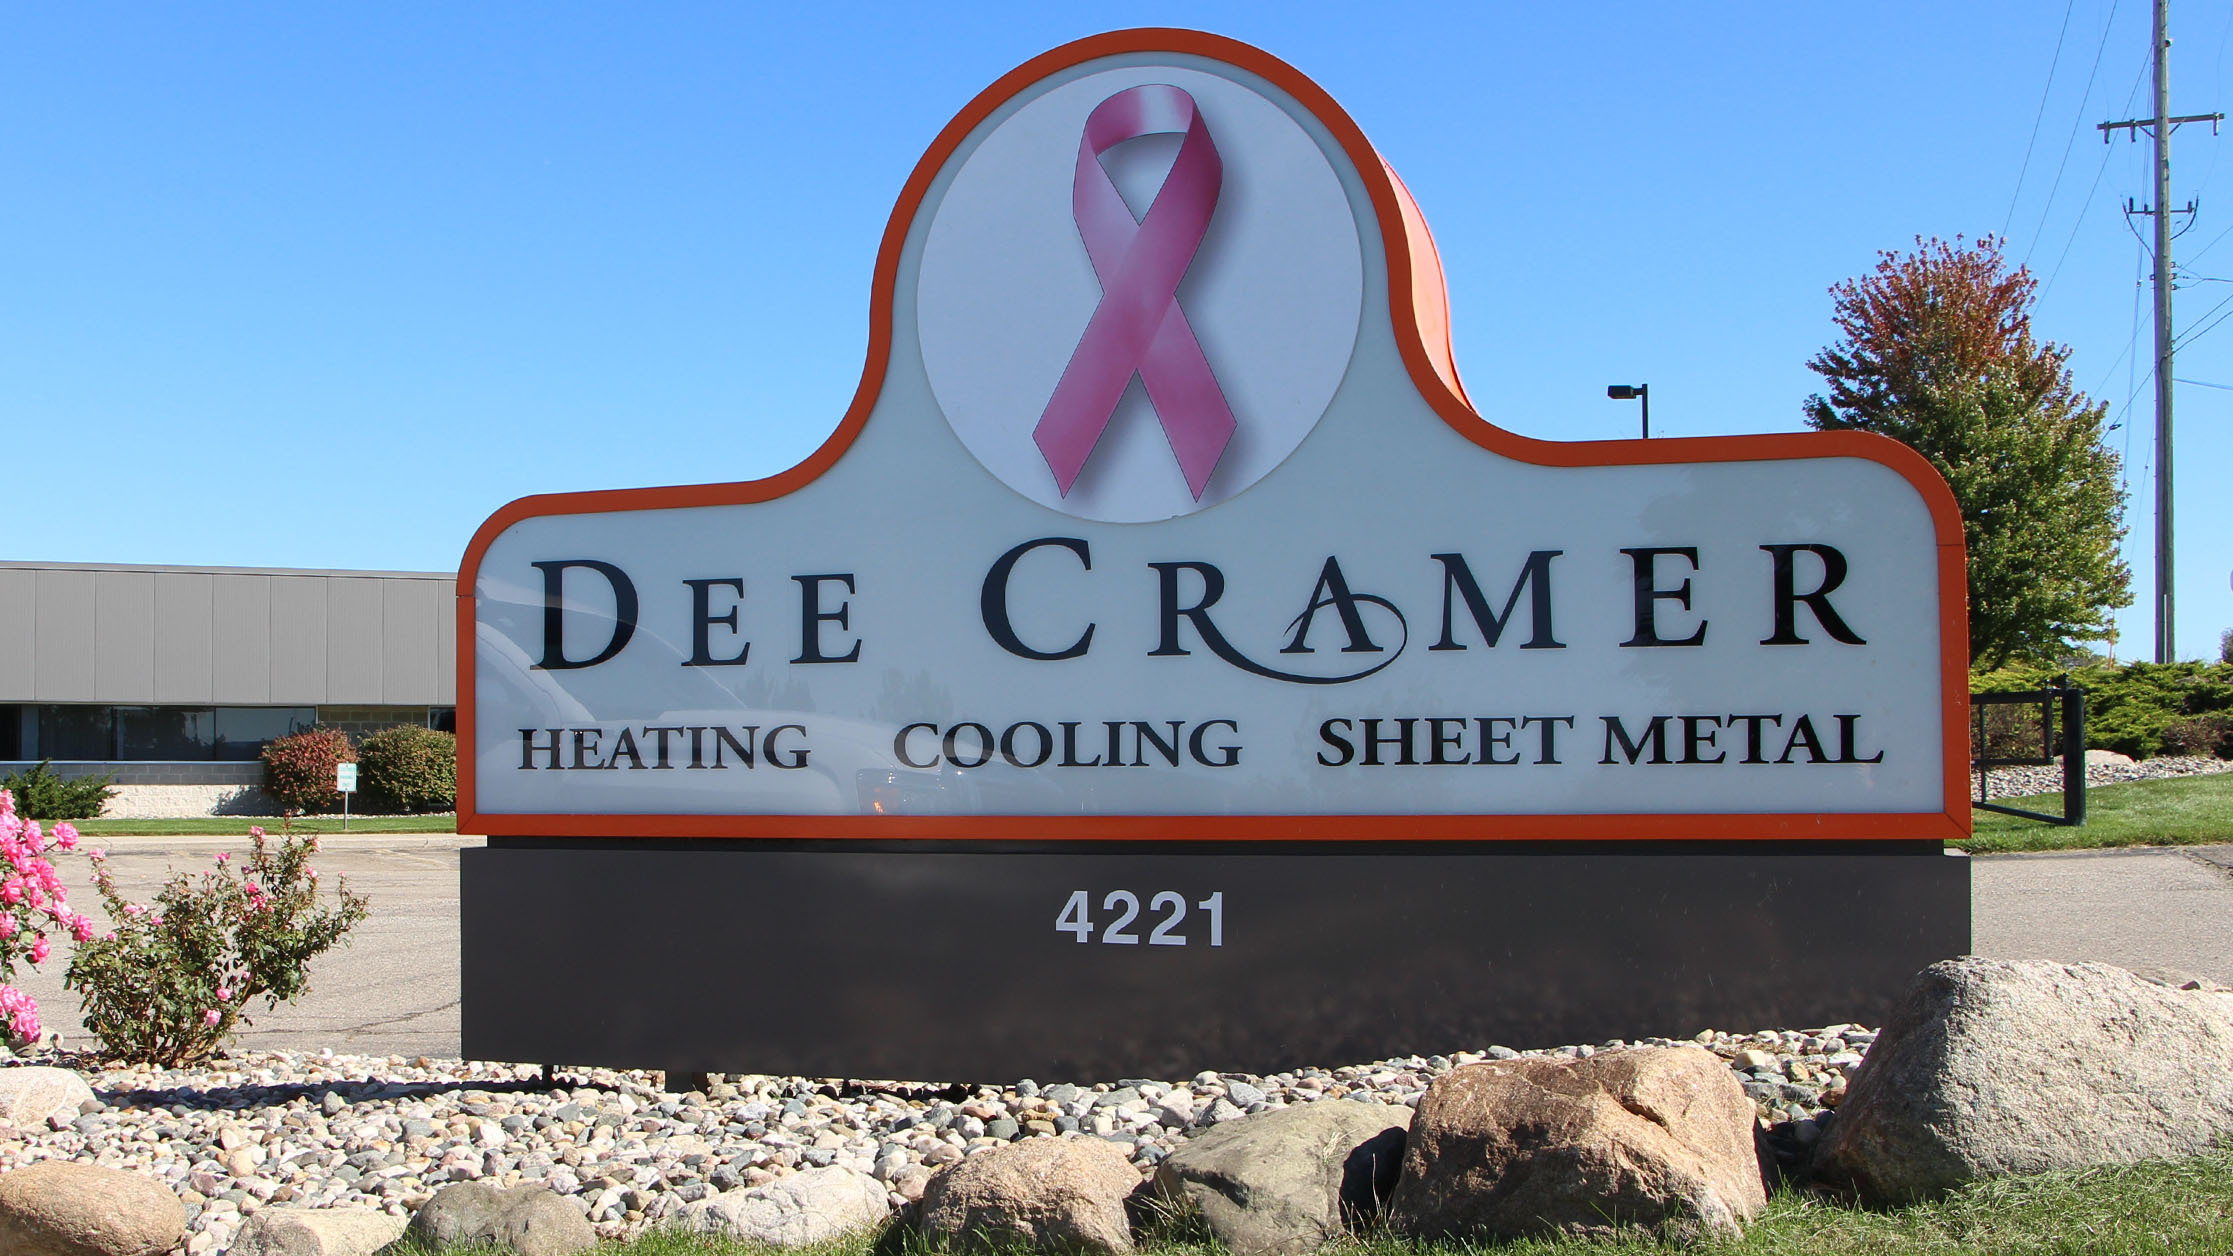 Dee Cramer supporting Breast Cancer Awareness